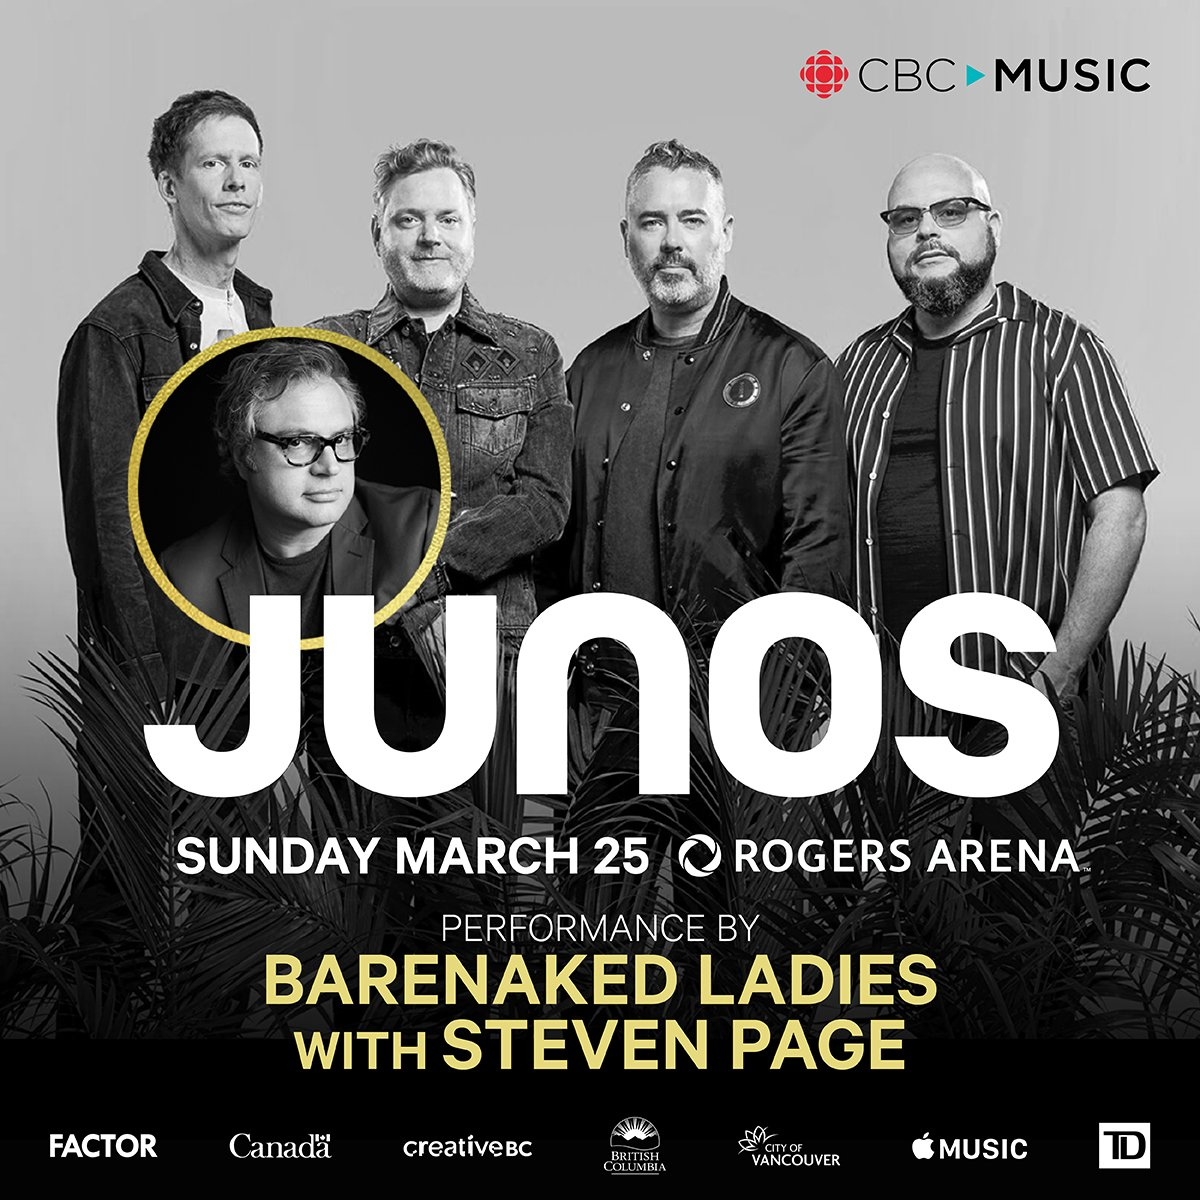 test Twitter Media - .@CANMusicHF inductees @barenakedladies with @StevenPage, @DianaKrall, @FelixCartal, @ShawnHook, @TheJerryCans WILL be performing LIVE at The 2018 @TheJUNOAwards in #Vancouver on March 25th! #JUNOS 🎫 Tickets are available now: https://t.co/051OHFs890 https://t.co/JbbagmQeI0